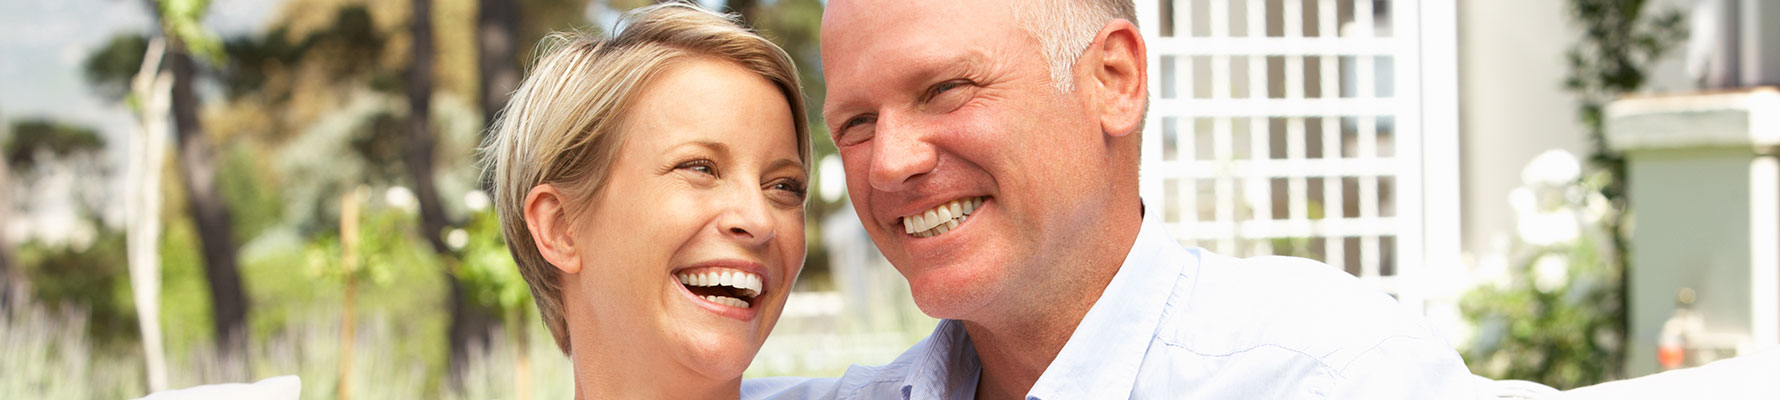 Choose Shek Dental, Prosthodontist and General Dentist in San Francisco, CA